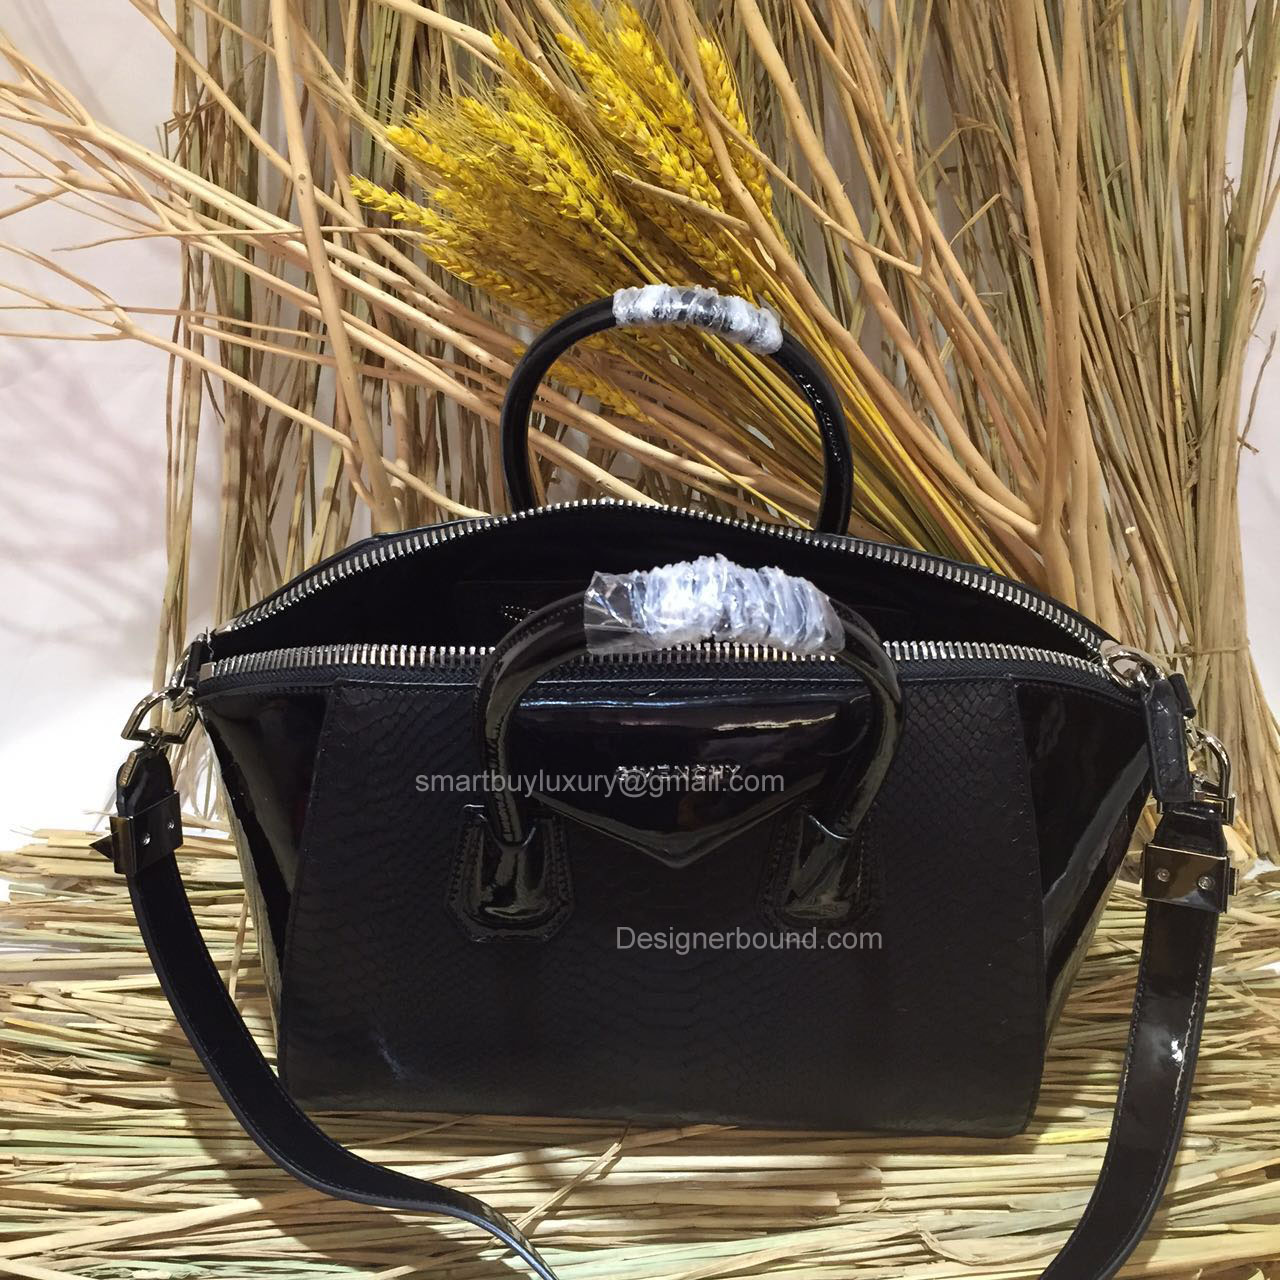 GIVENCHY MEDIUM ANTIGONA BAG IN BLACK PYTHON AND PATENT LEATHER 285173L   373.00 7b13186eaa9f4